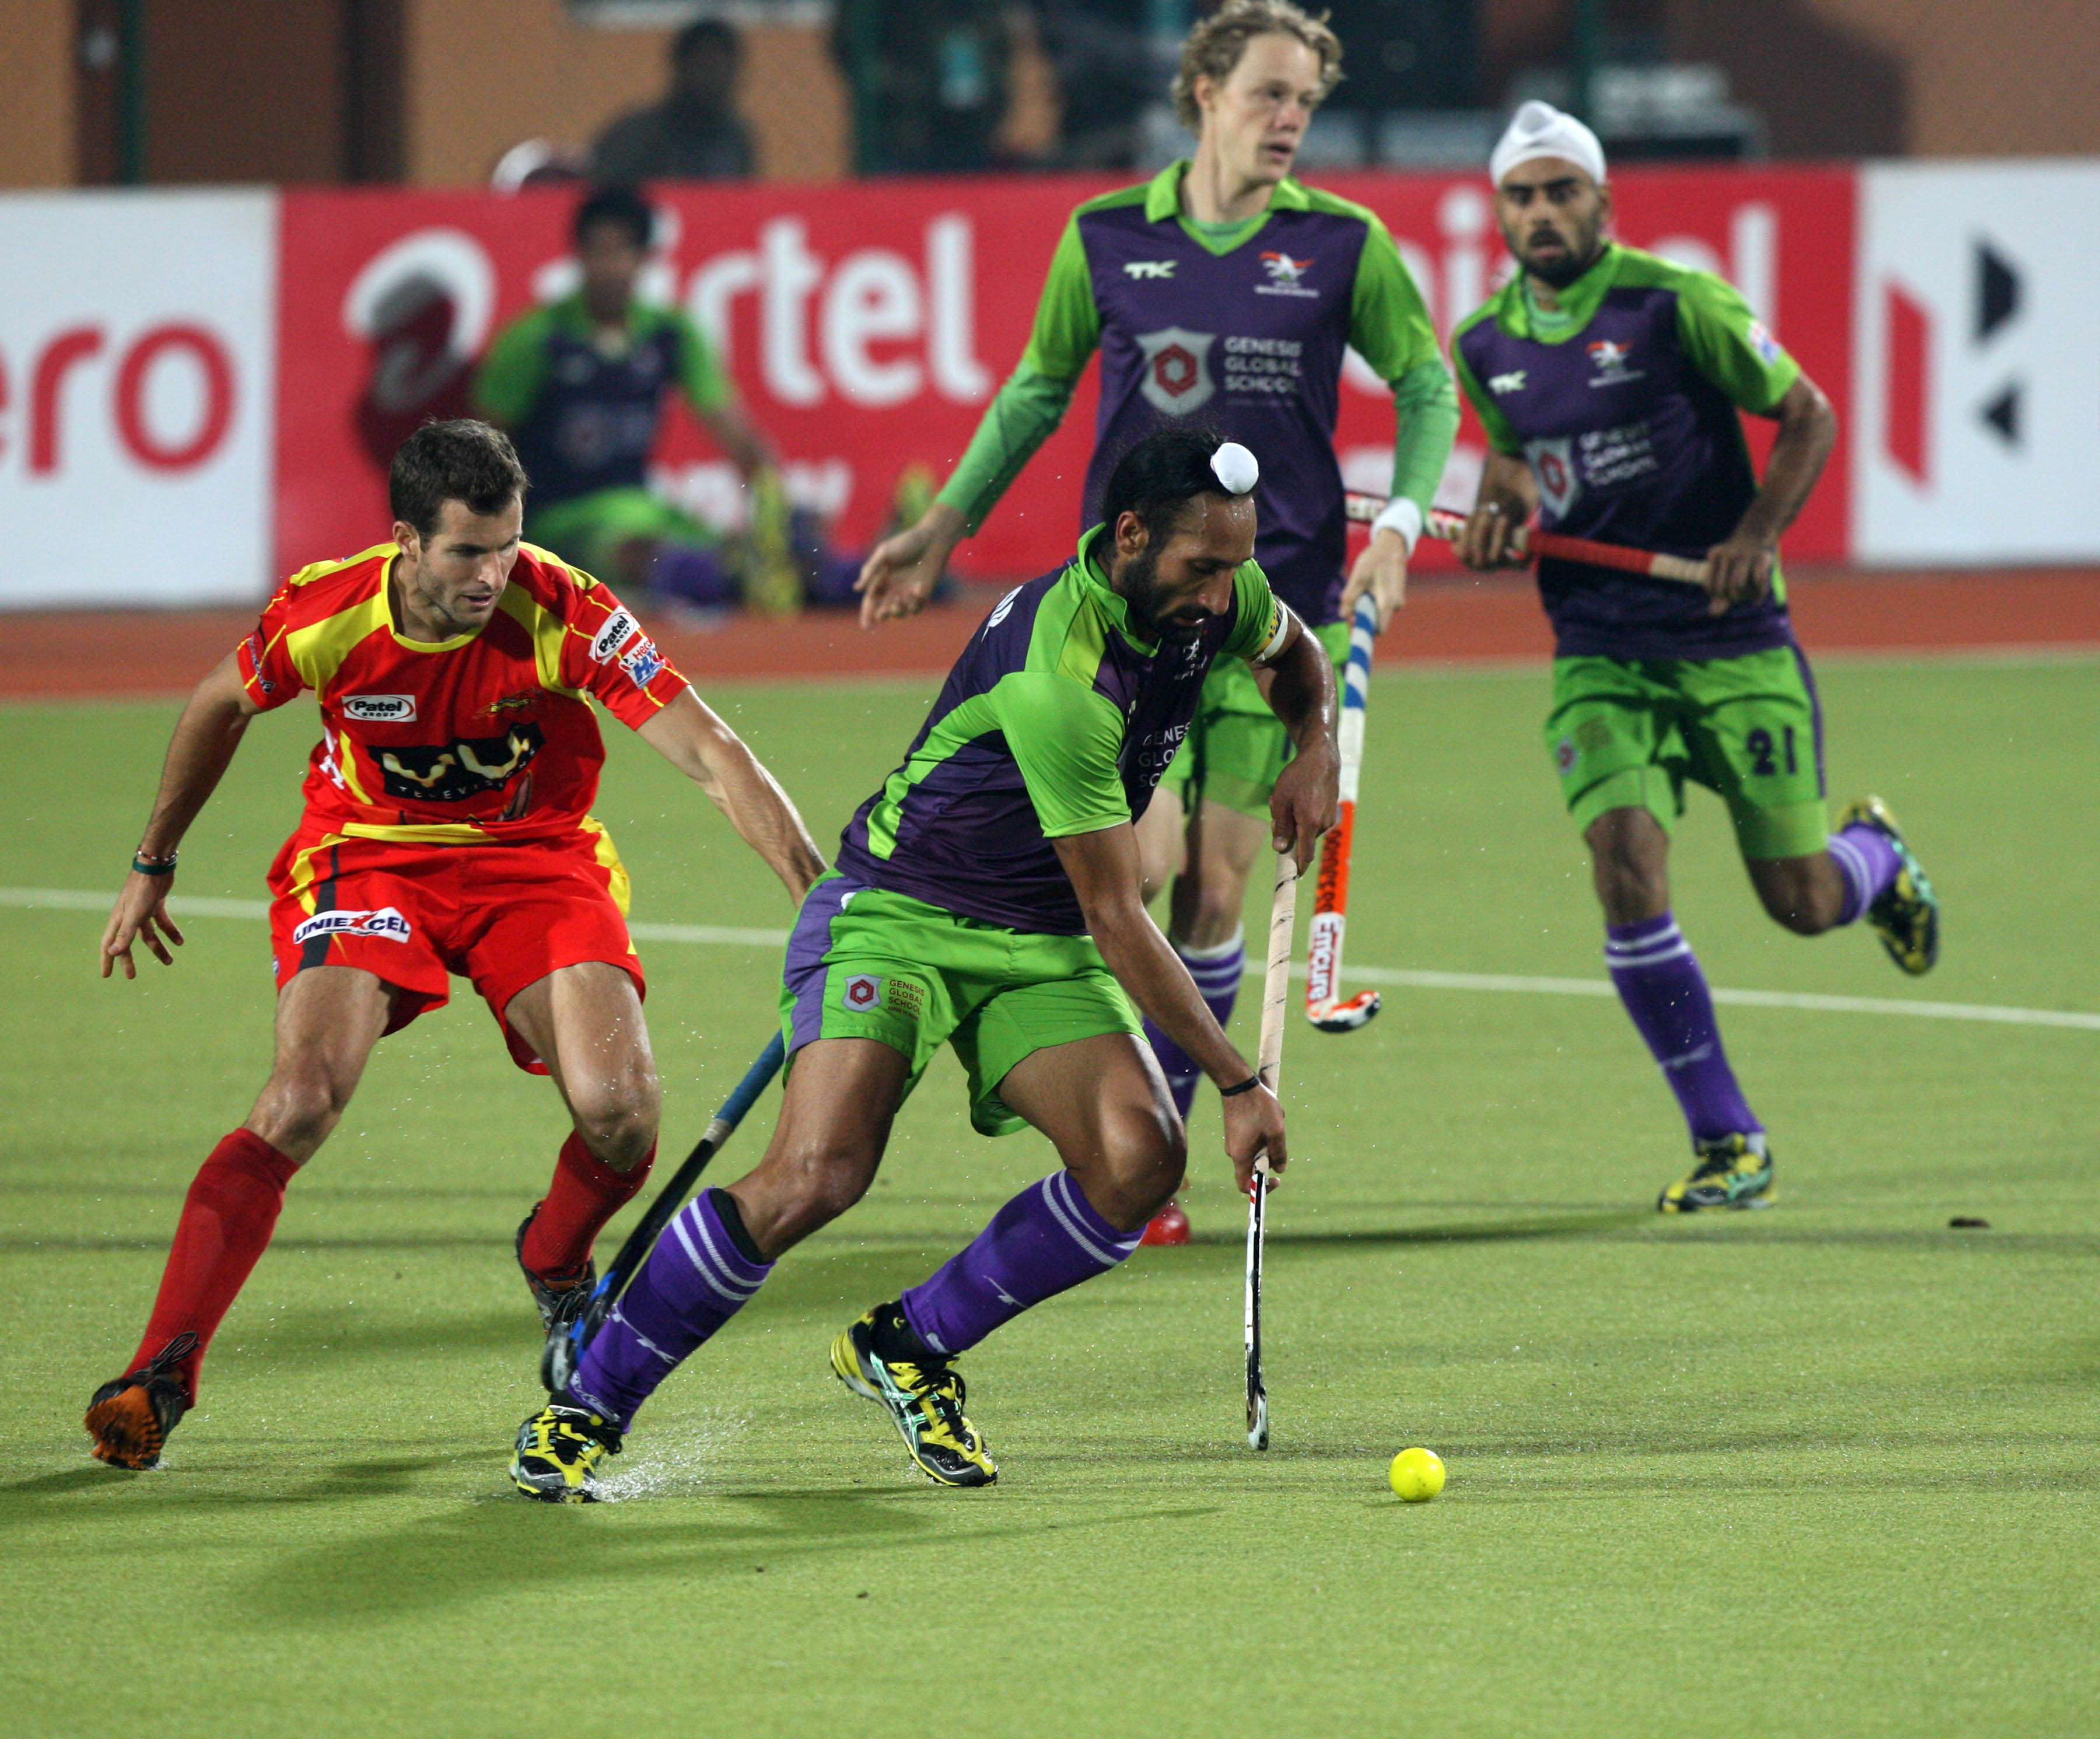 Sardar singh captain of DWR team in action during 22nd match of HHIL2013 at ranchi